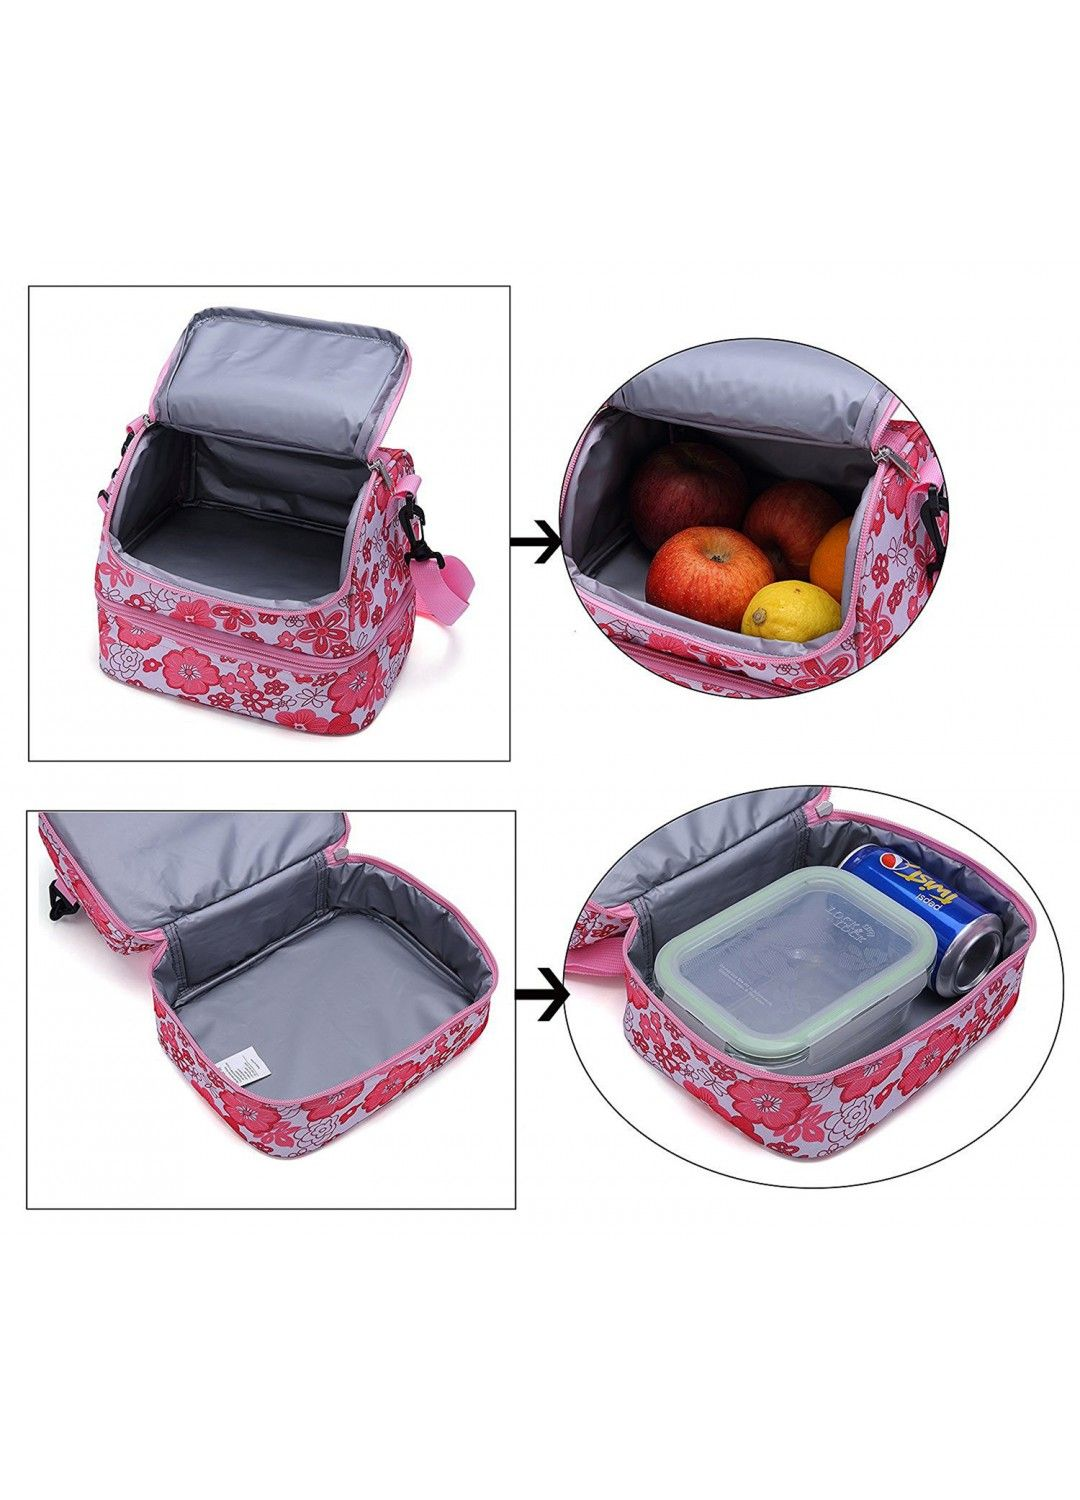 2a7bec2694c1b MIER Double Decker Insulated Lunch Box Soft Cooler Bag Thermal Lunch ...